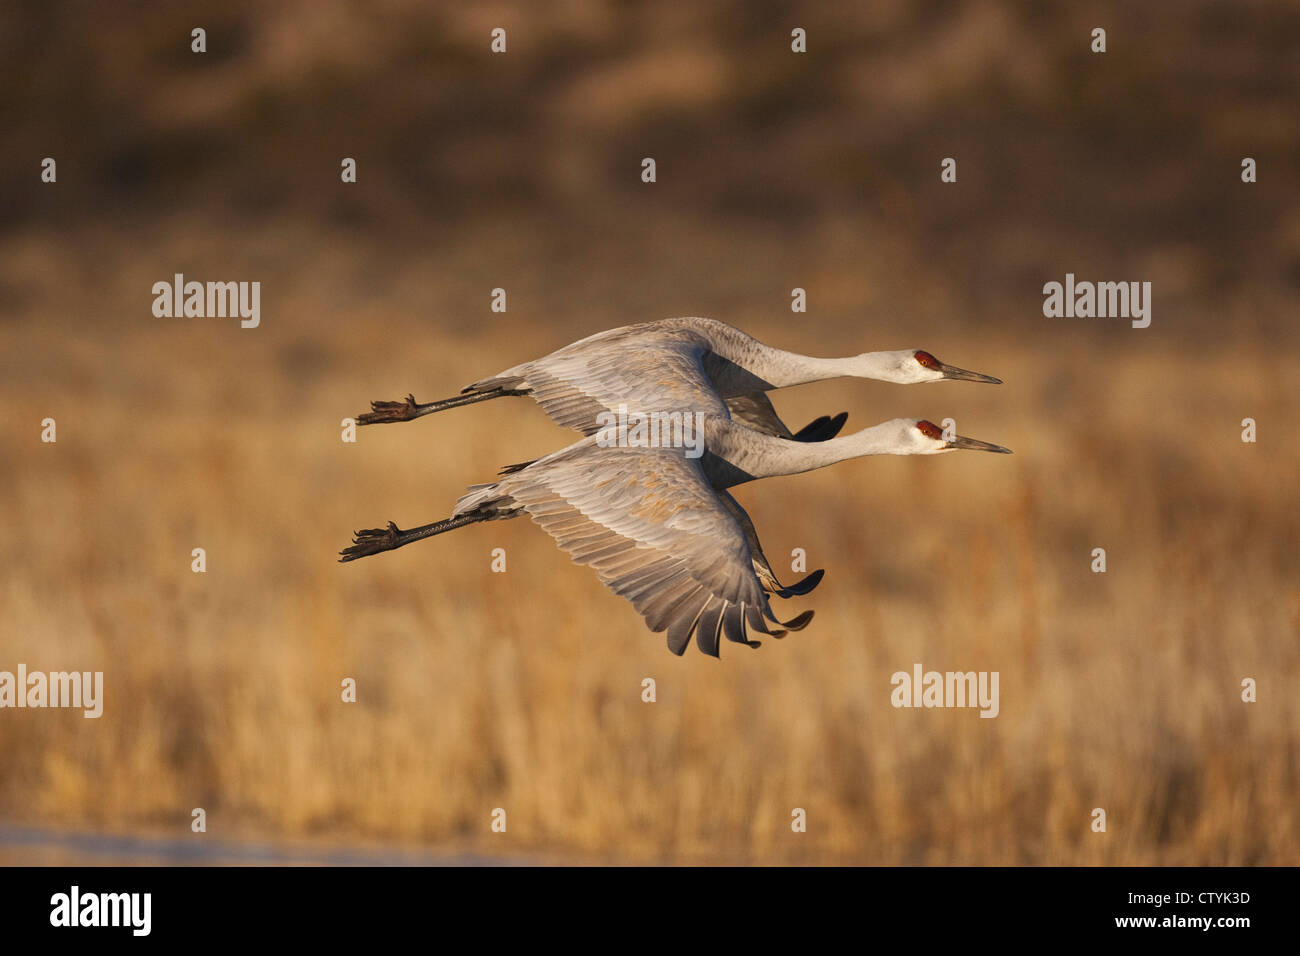 Sandhill Crane (Grus canadensis) adults in flight, Bosque del Apache National Wildlife Refuge , New Mexico, USA - Stock Image